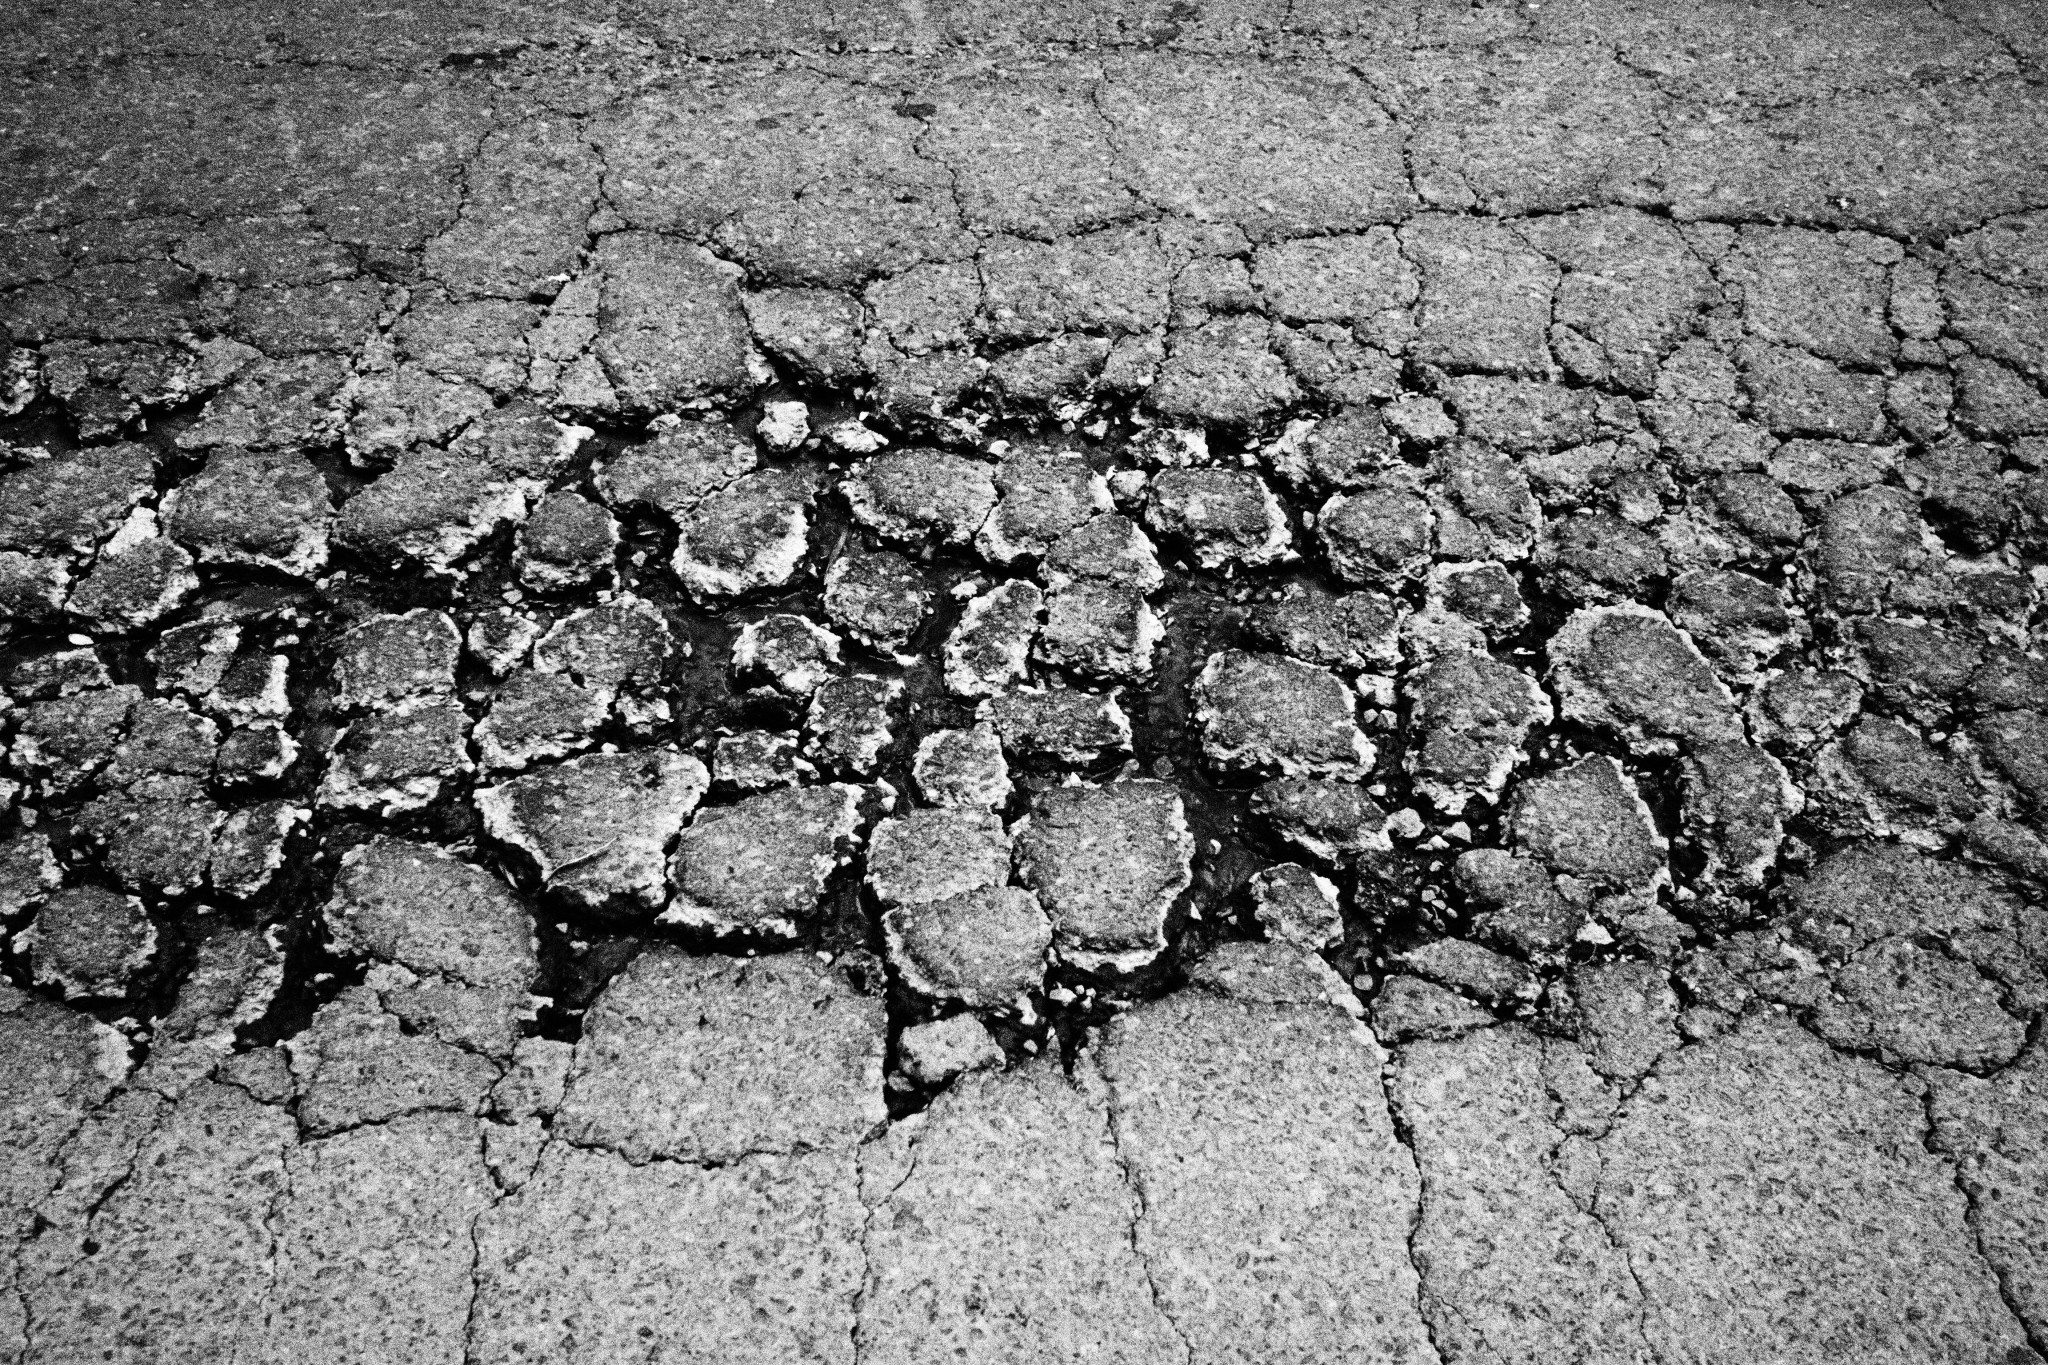 <p>Being downtown doesn&#8217;t always mean smooth sailing on the thoroughfares. This fractured patch is at the edge of Kapiolani Boulevard.</p>